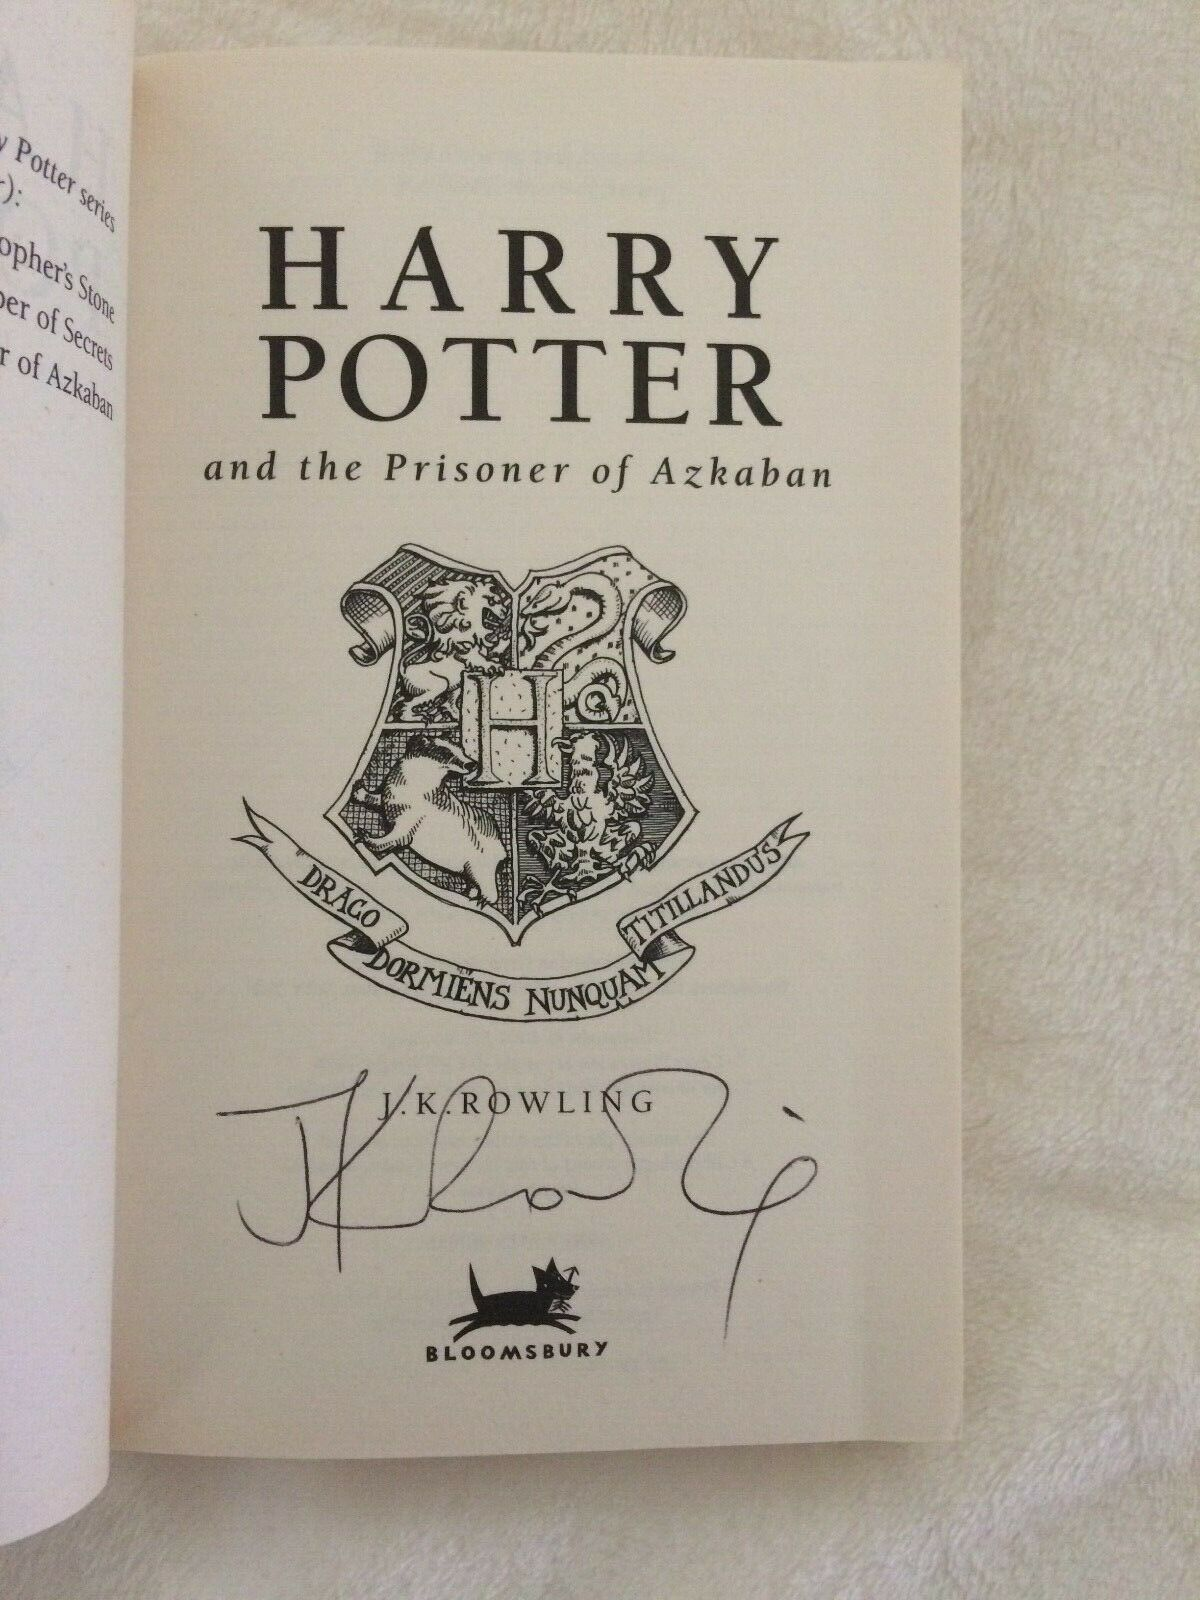 J. K. Rowling signature forgery found on ebay inside a UK Harry Potter and the Prisoner of Azkaban. Sold by Quartermain-75.